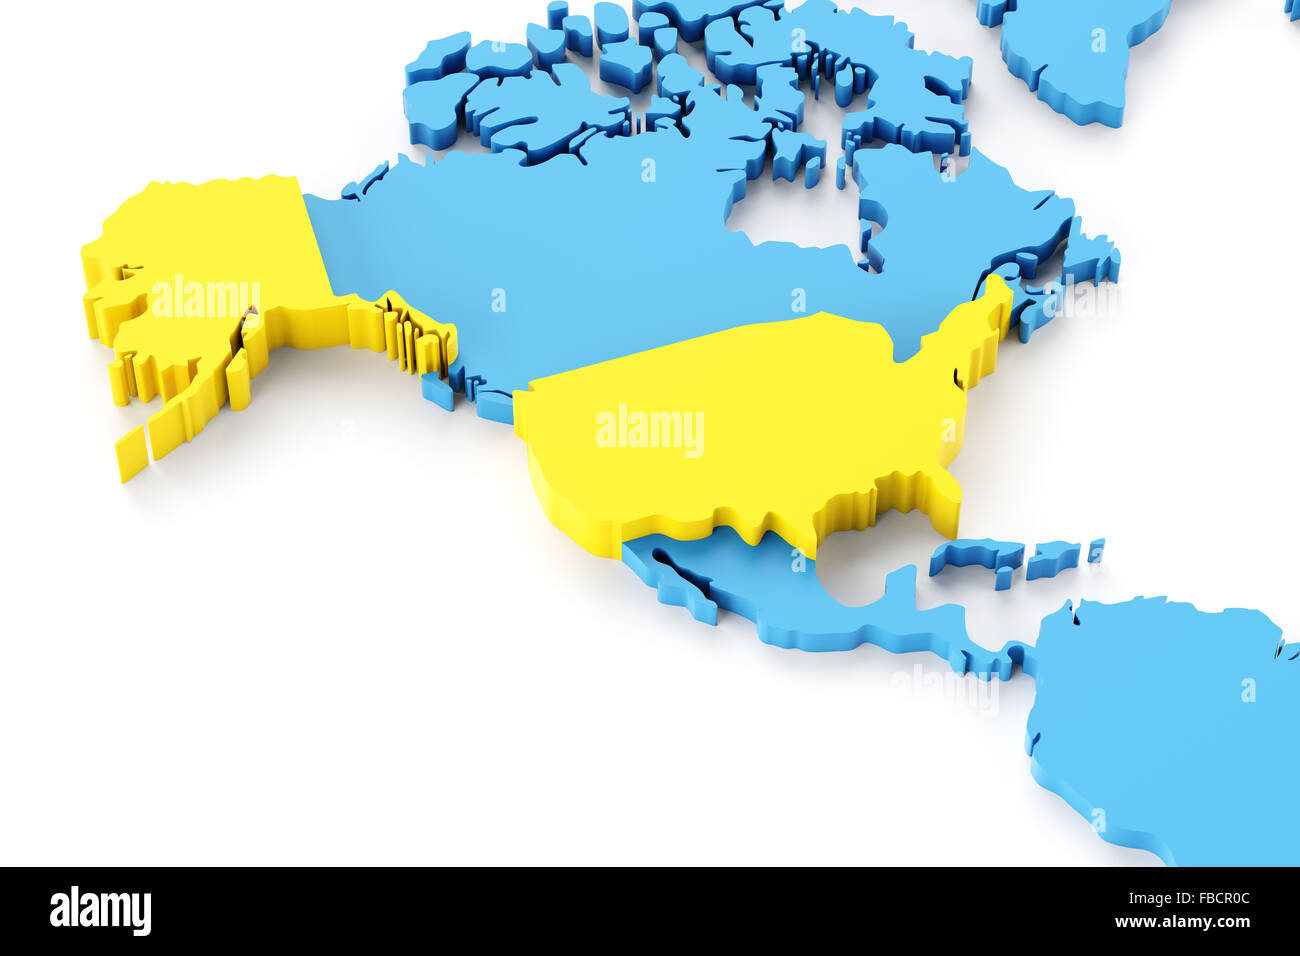 Map of north america with usa highlighted stock photo 93094524 alamy map of north america with usa highlighted gumiabroncs Image collections